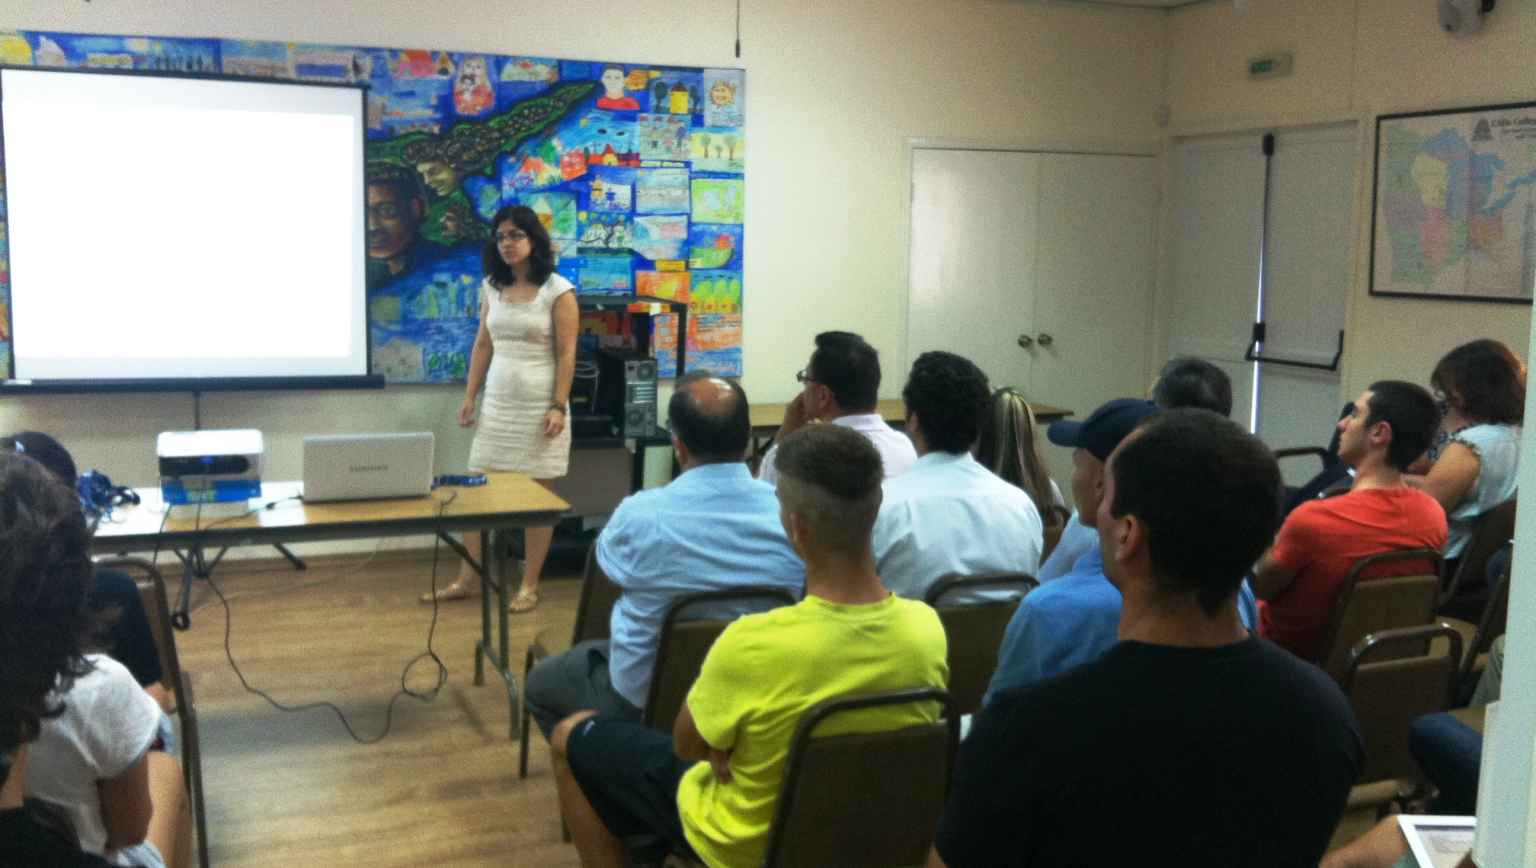 EducationUSA Adviser Gulsen Oztoprak presenting to students